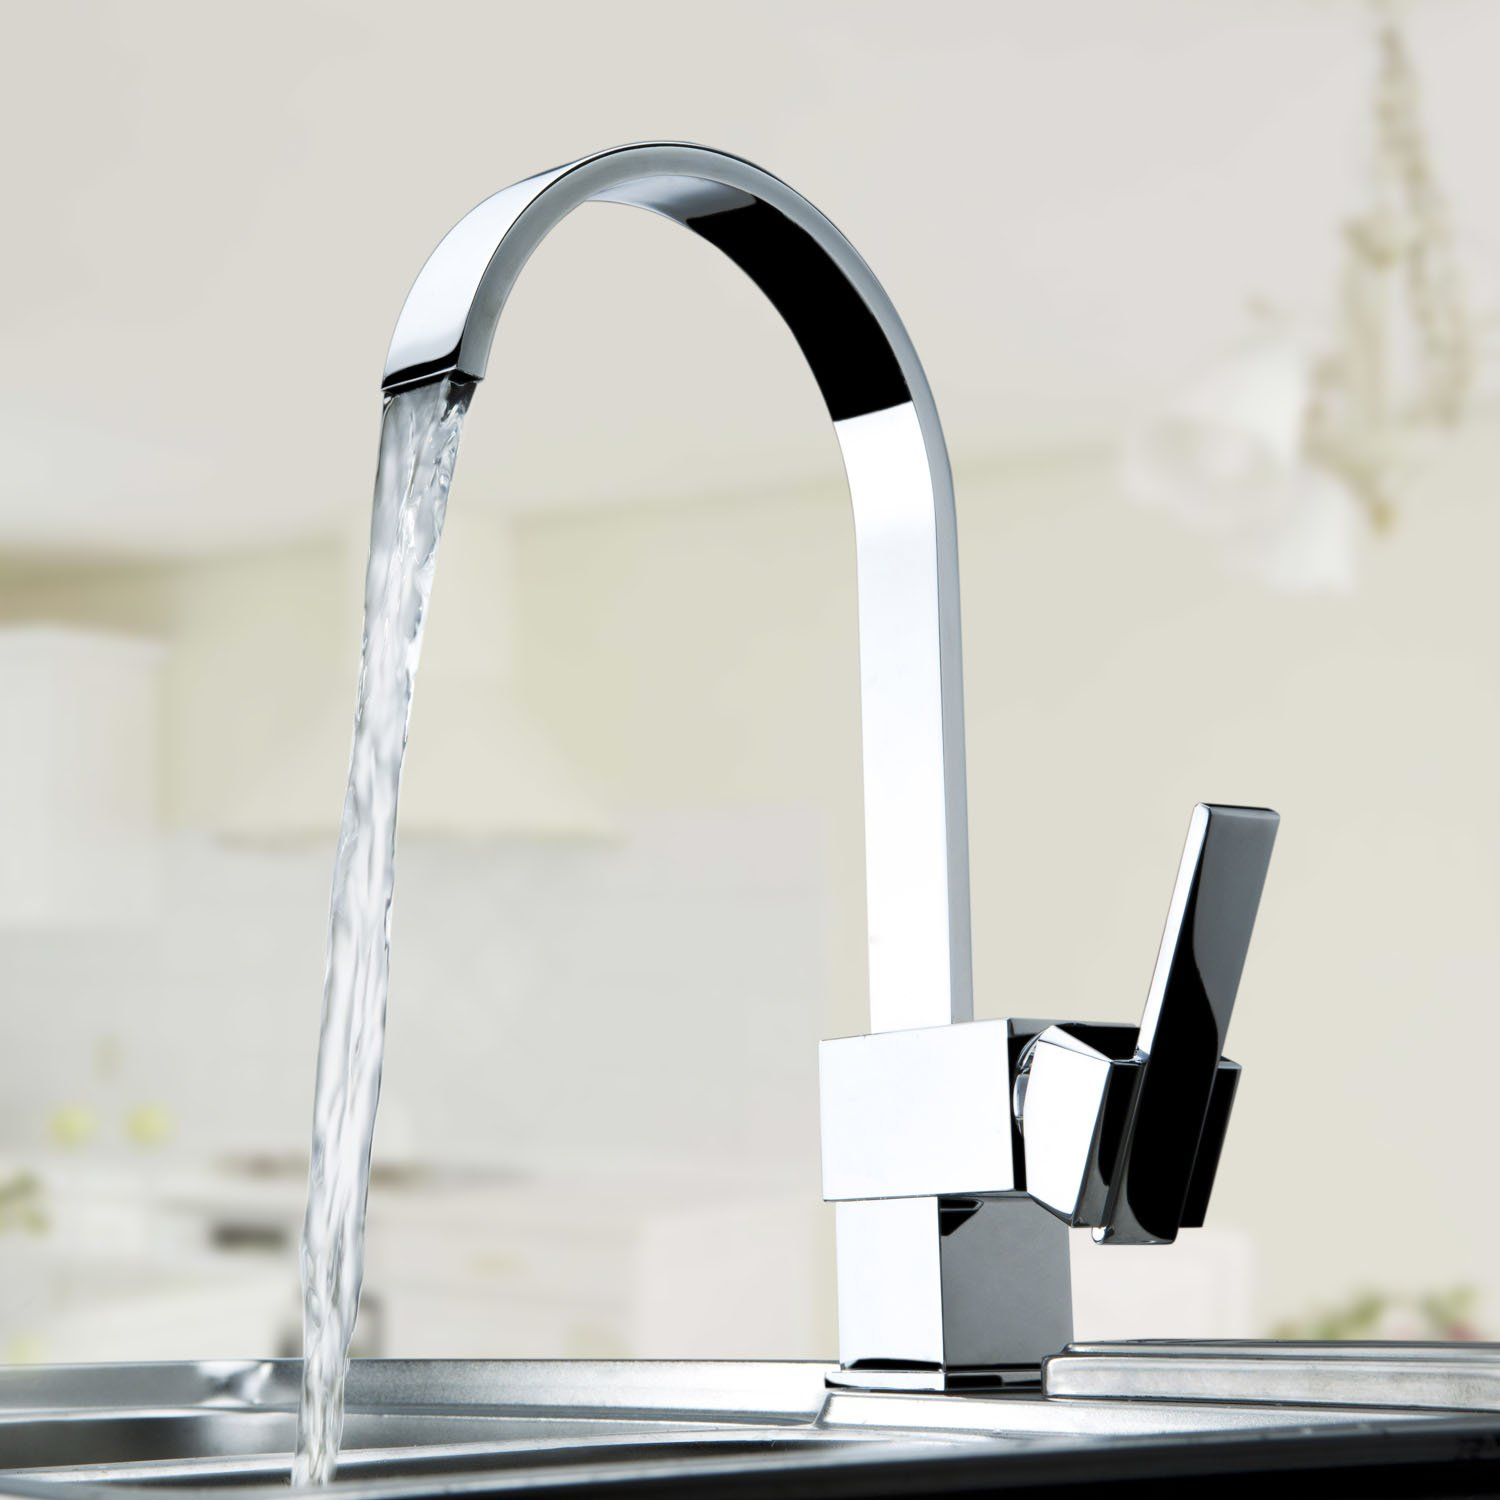 Incroyable Single Handle Kitchen Vessel Sink Faucet Tall Curve With Swivel Spout  Chrome Finish   Touch On Bathroom Sink Faucets   Amazon.com